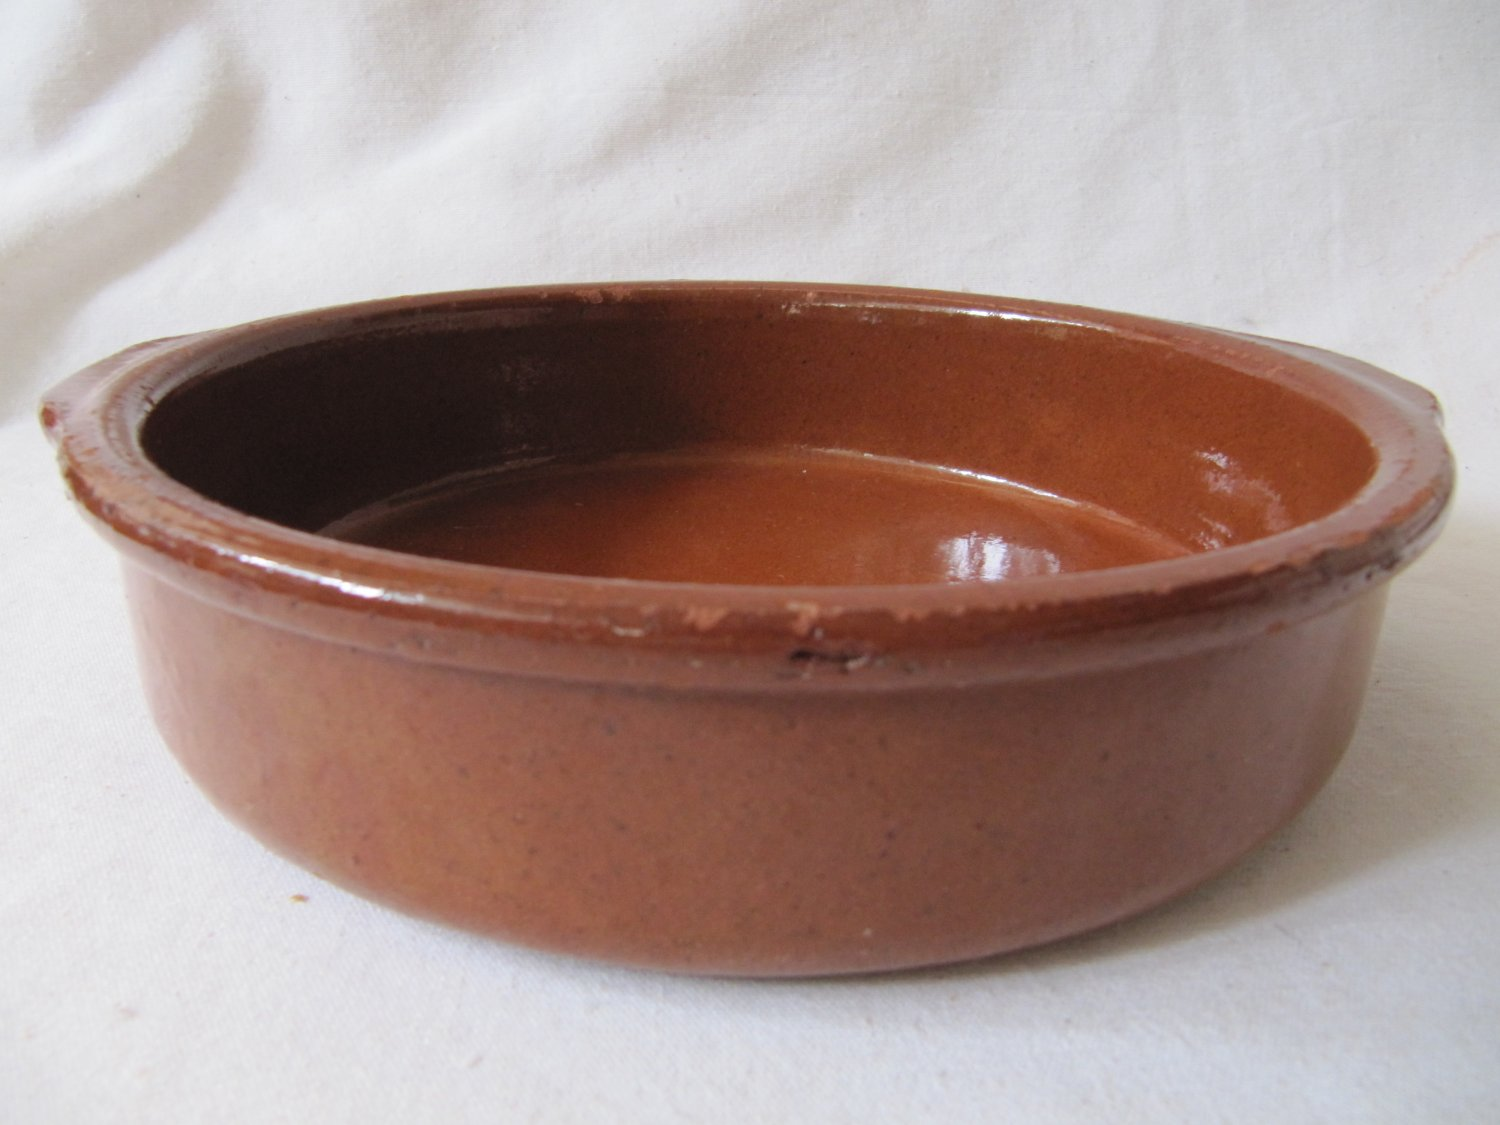 Vintage Mexico Taxco Primitive Heavy Ceramic Pottery Cooking Serving Bowl Dk Brown 8 x 2 Inches